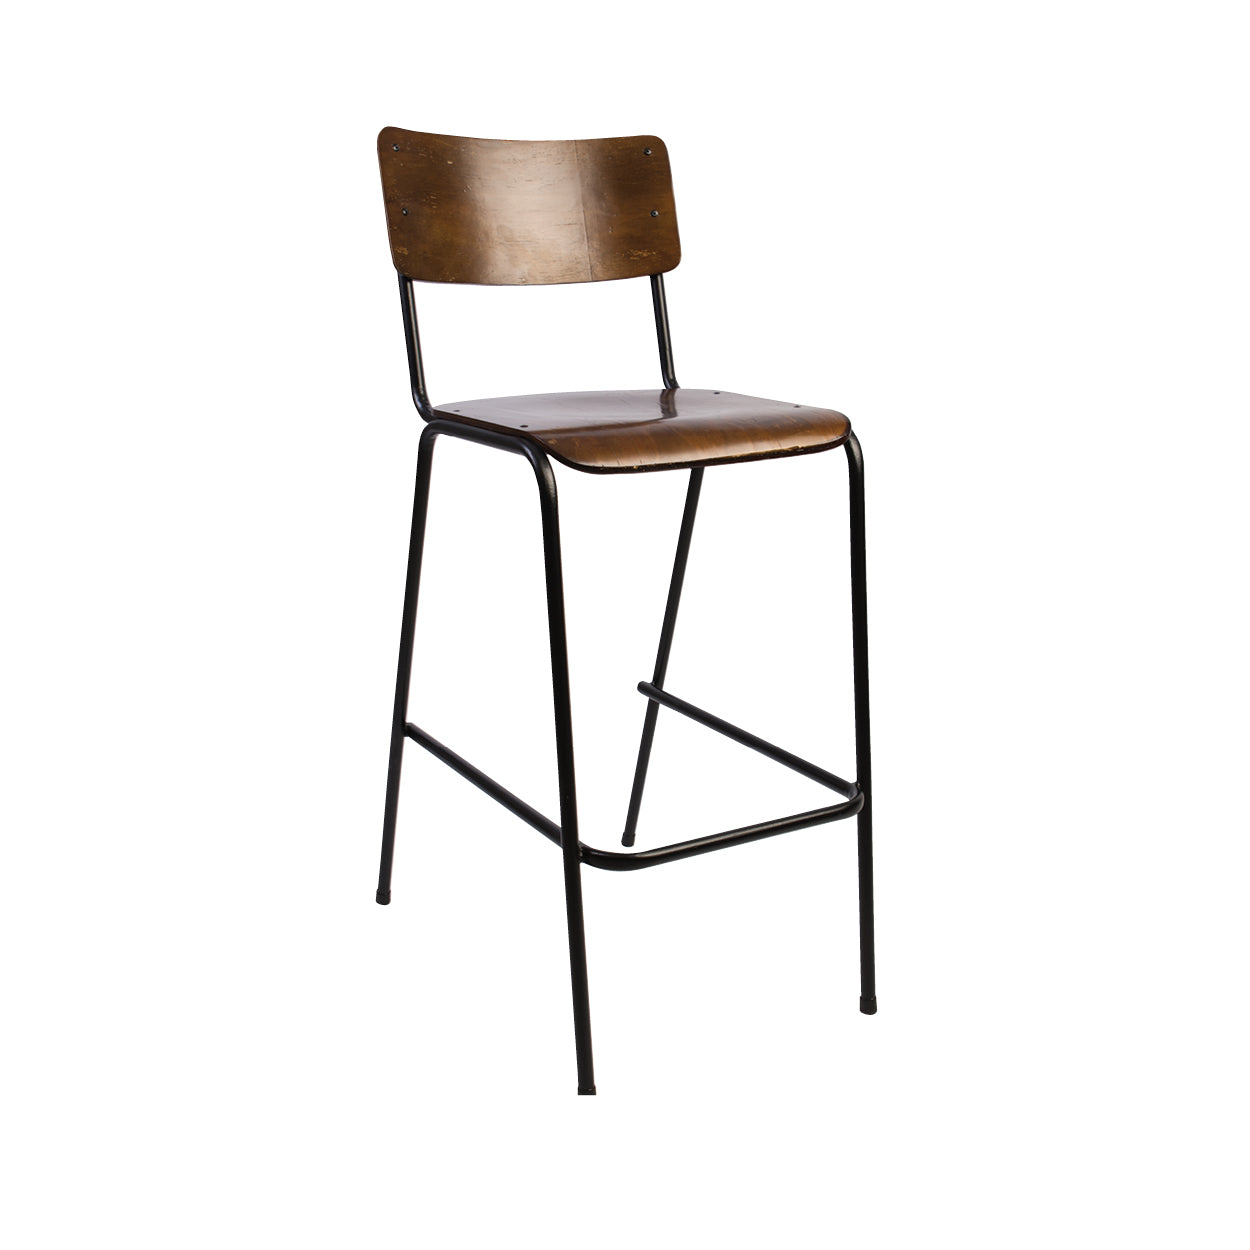 Hedcor school stacker bar chair stained